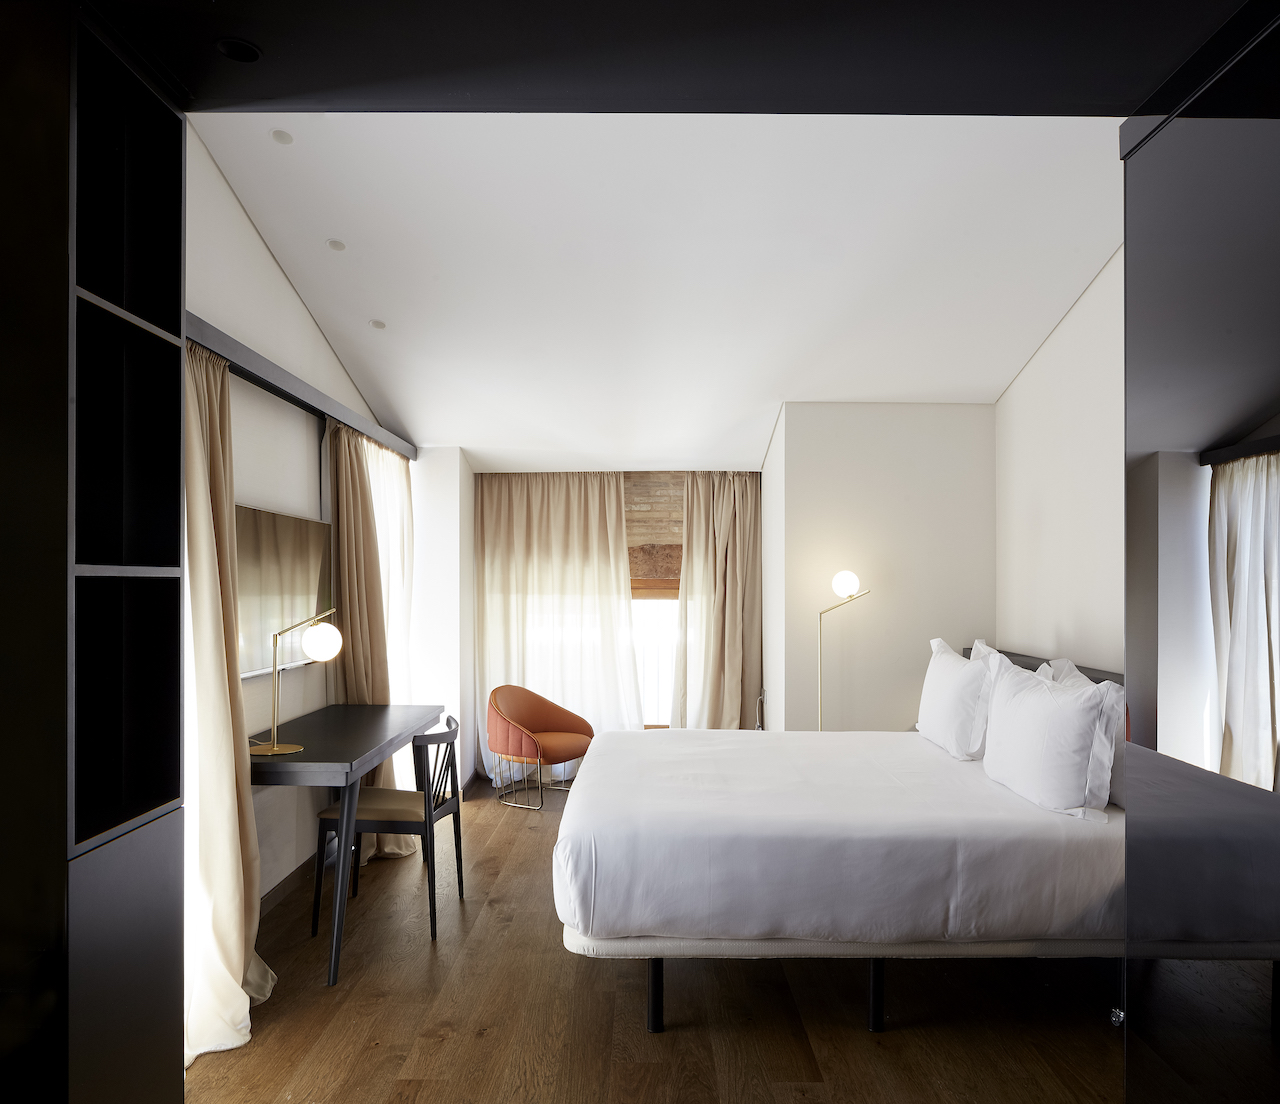 Each separate bedroom features a completely different colour scheme and theme.